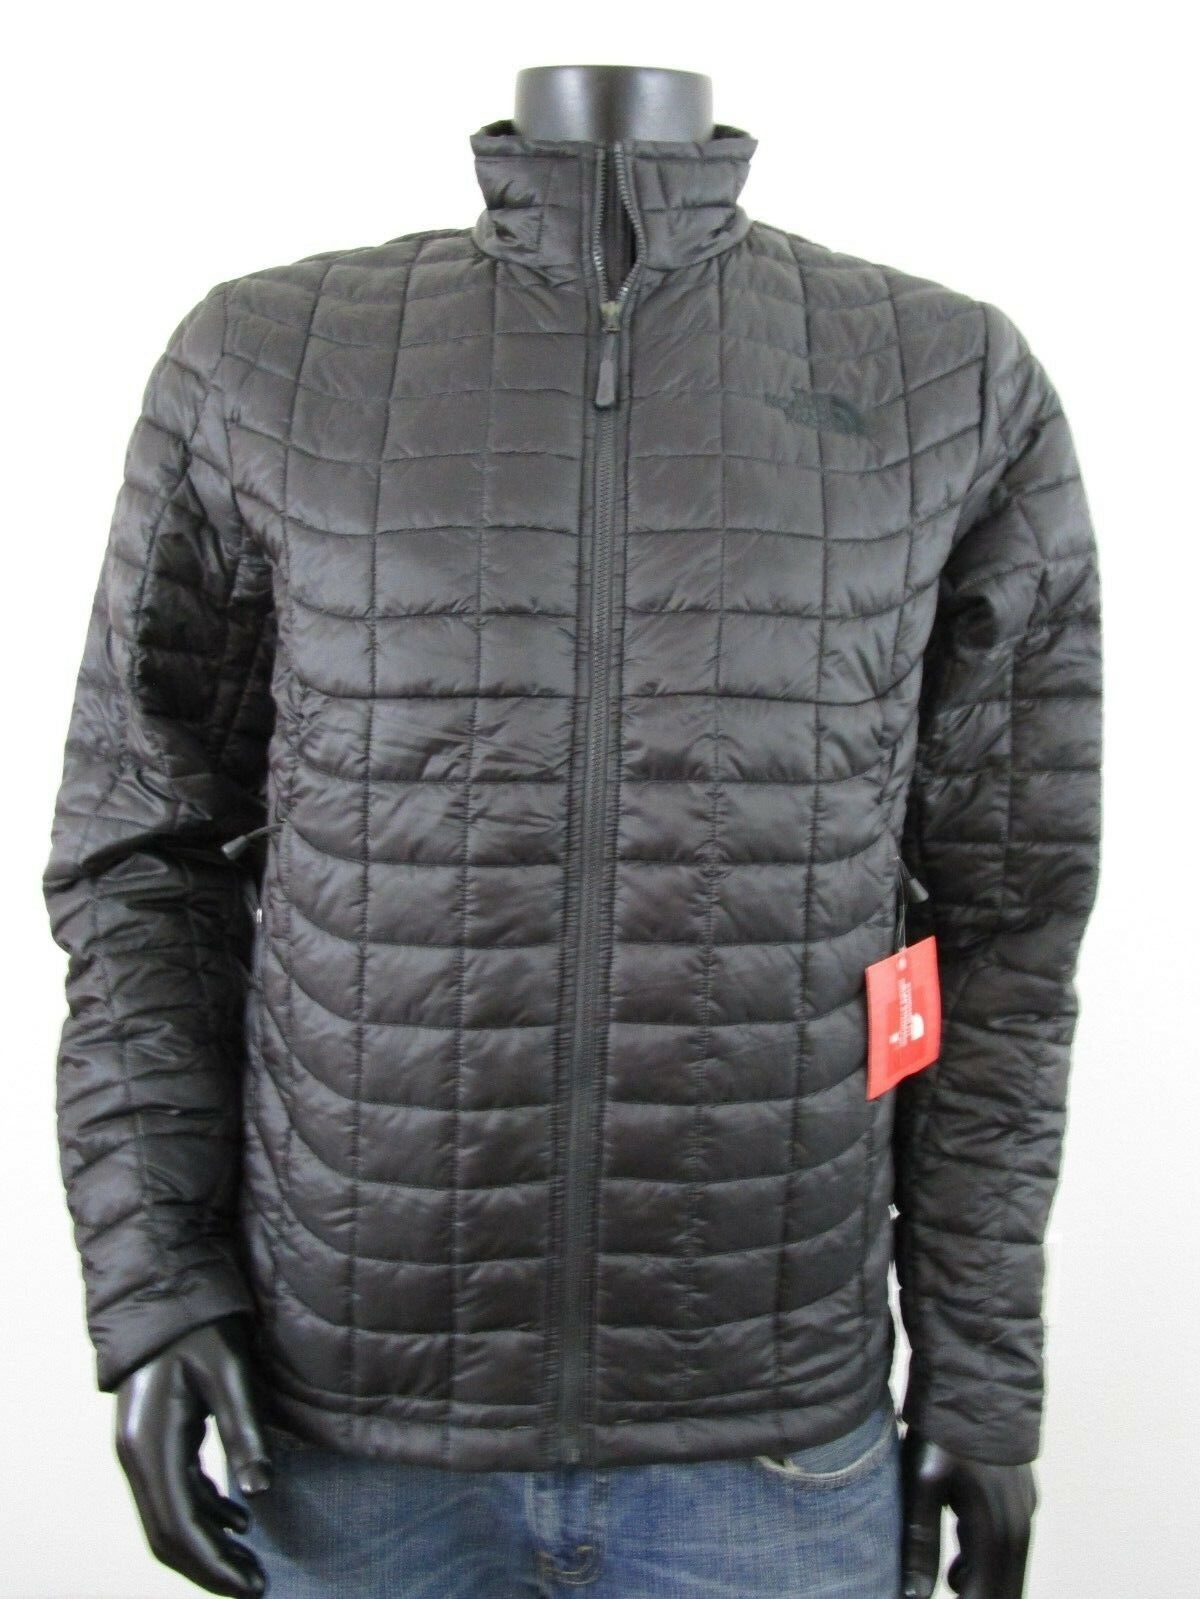 97afe9f58 NWT Mens TNF The North Face Thermoball Insulated FZ Puffer Jacket - Asphalt  Grey